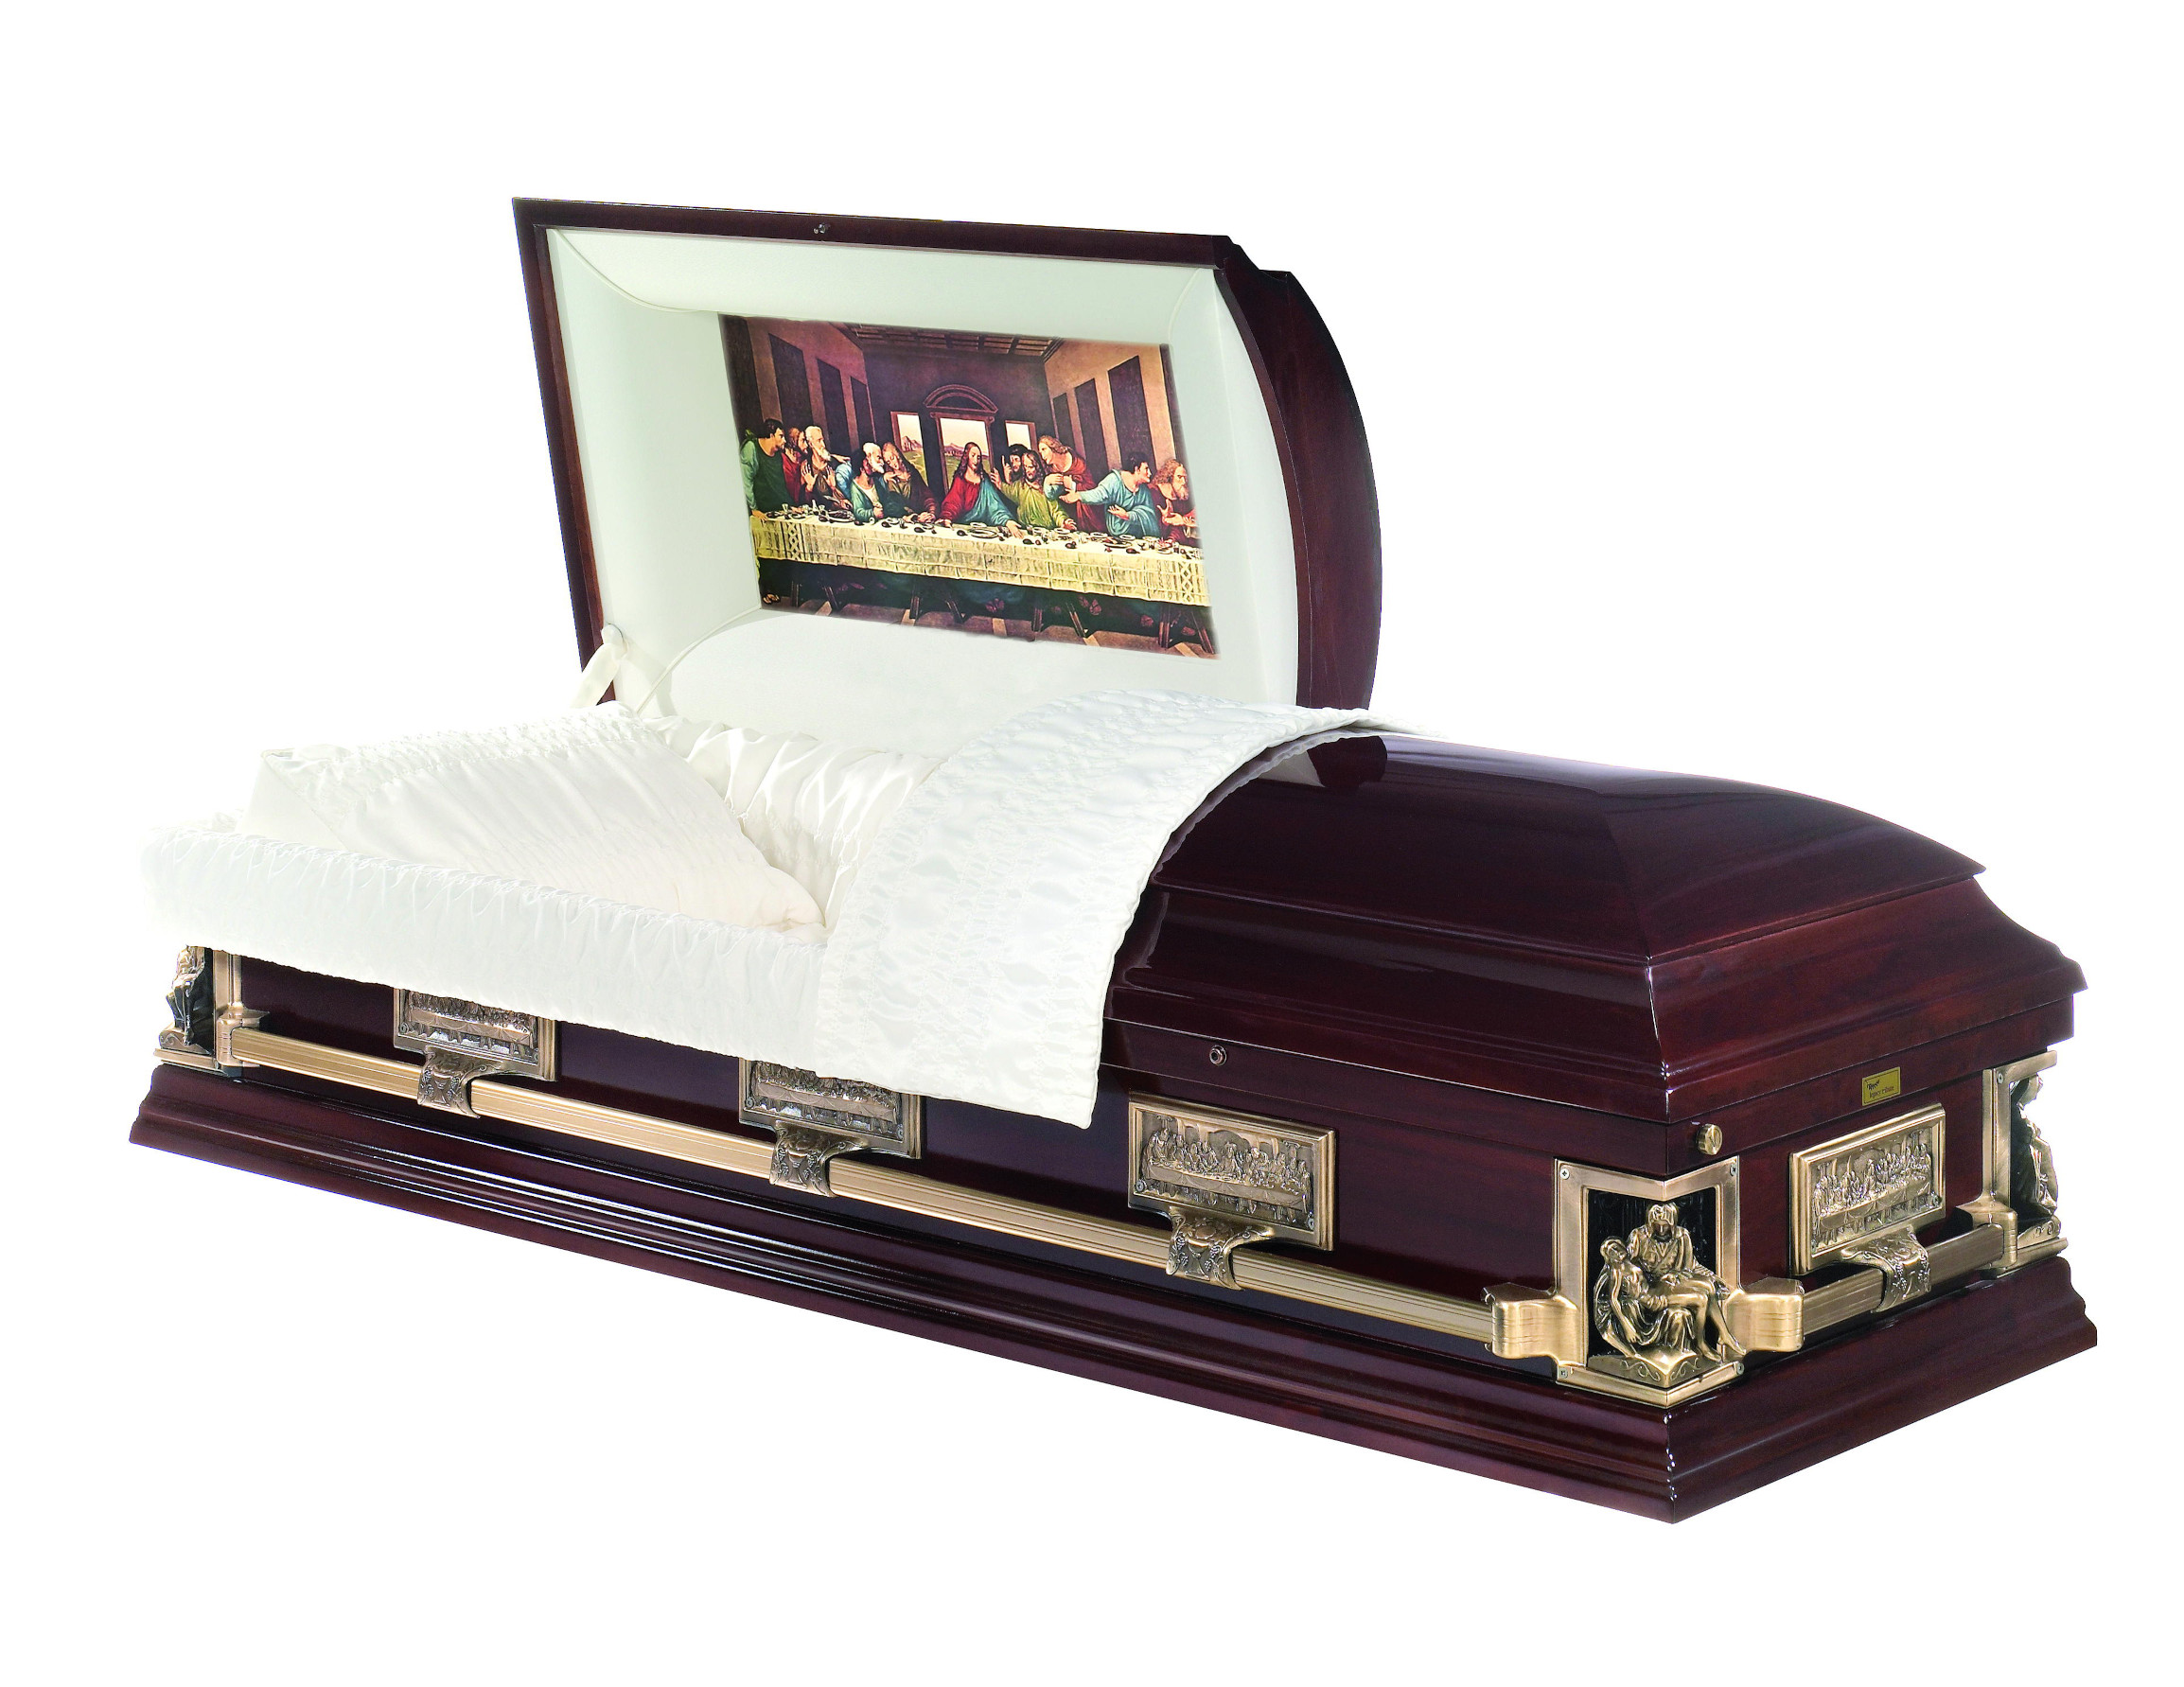 Solid poplar casket with highly polished finish. Featuring images of the Last Supper by Leonardo da Vinci